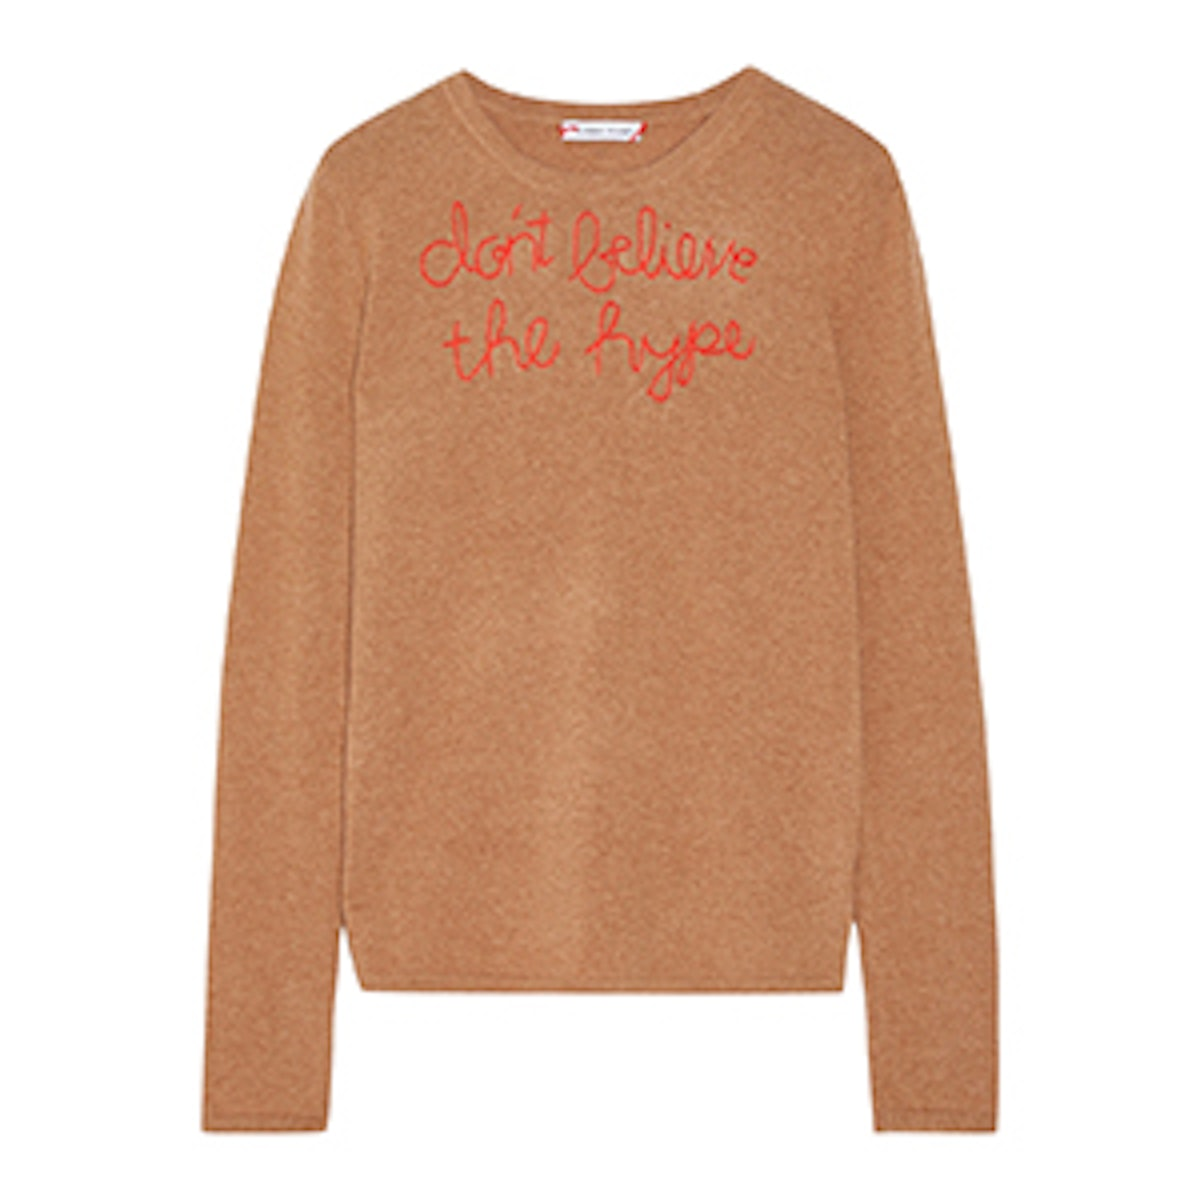 Don't Believe The Hype Embroidered Cashmere Sweater